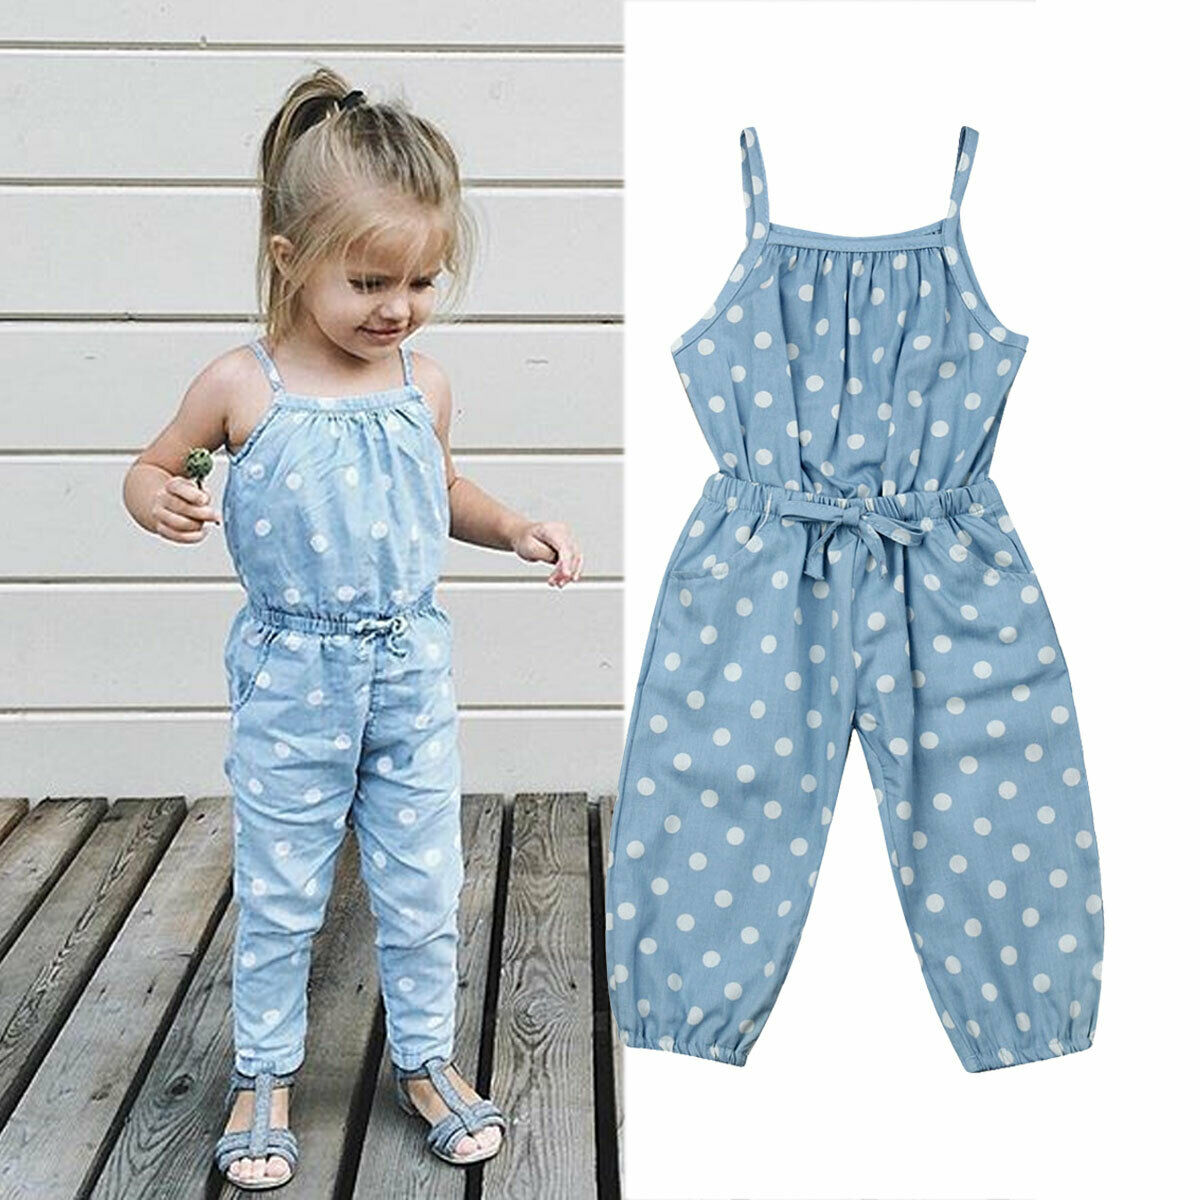 ac229dd72 1-5Y Cute Infants Baby Girl Romper Sleeveless Blue Wave Point Bib Pants  Trousers Summer Clothes Top ~ Perfect Deal June 2019